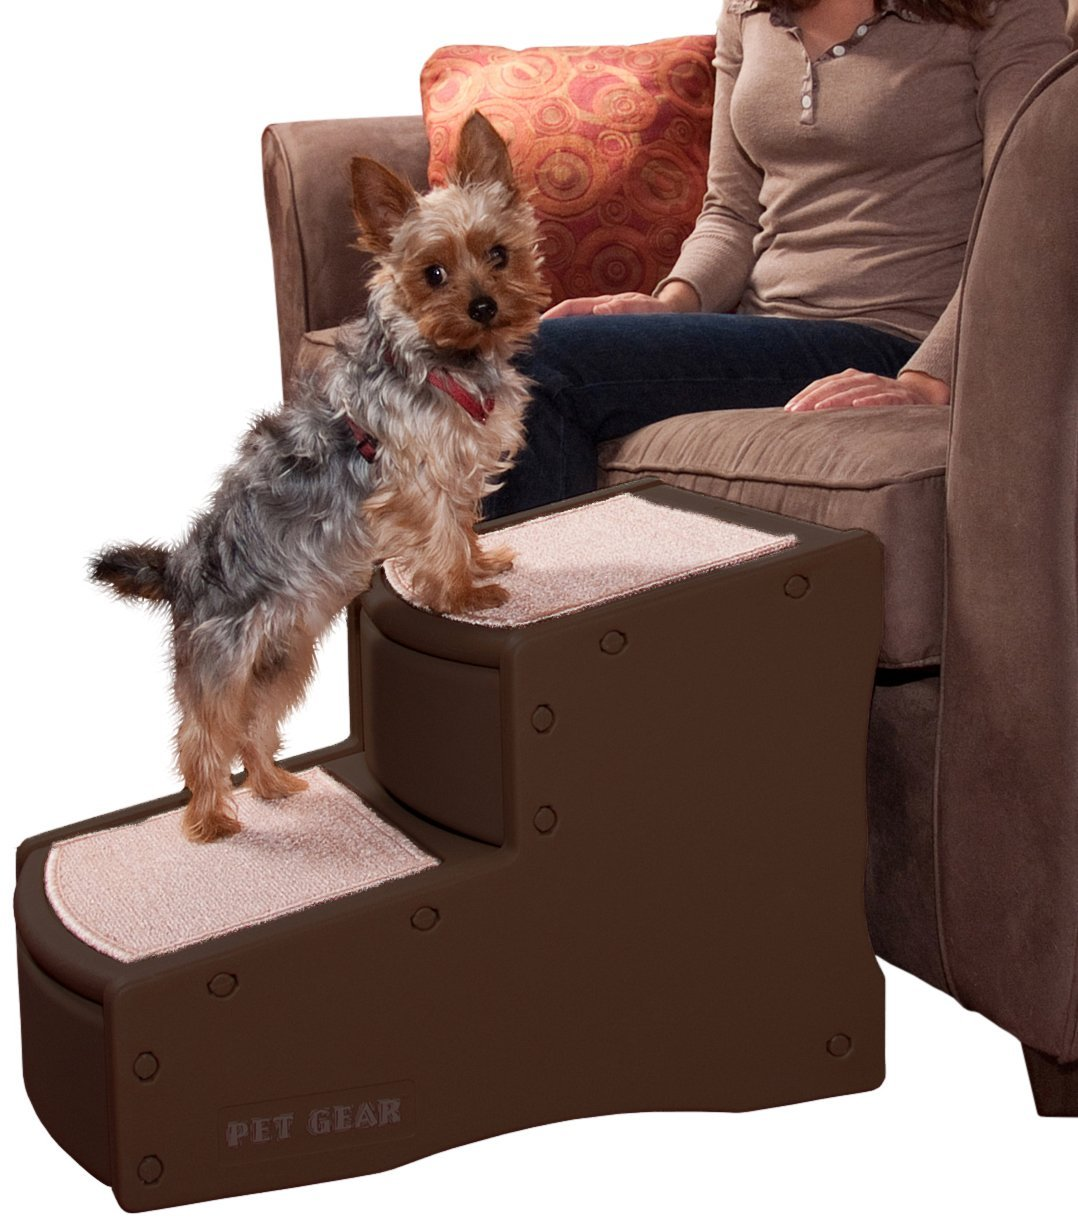 Top 10 Dog Beds And Furniture Products: Ease Of Use, Comfort & Convenience 10